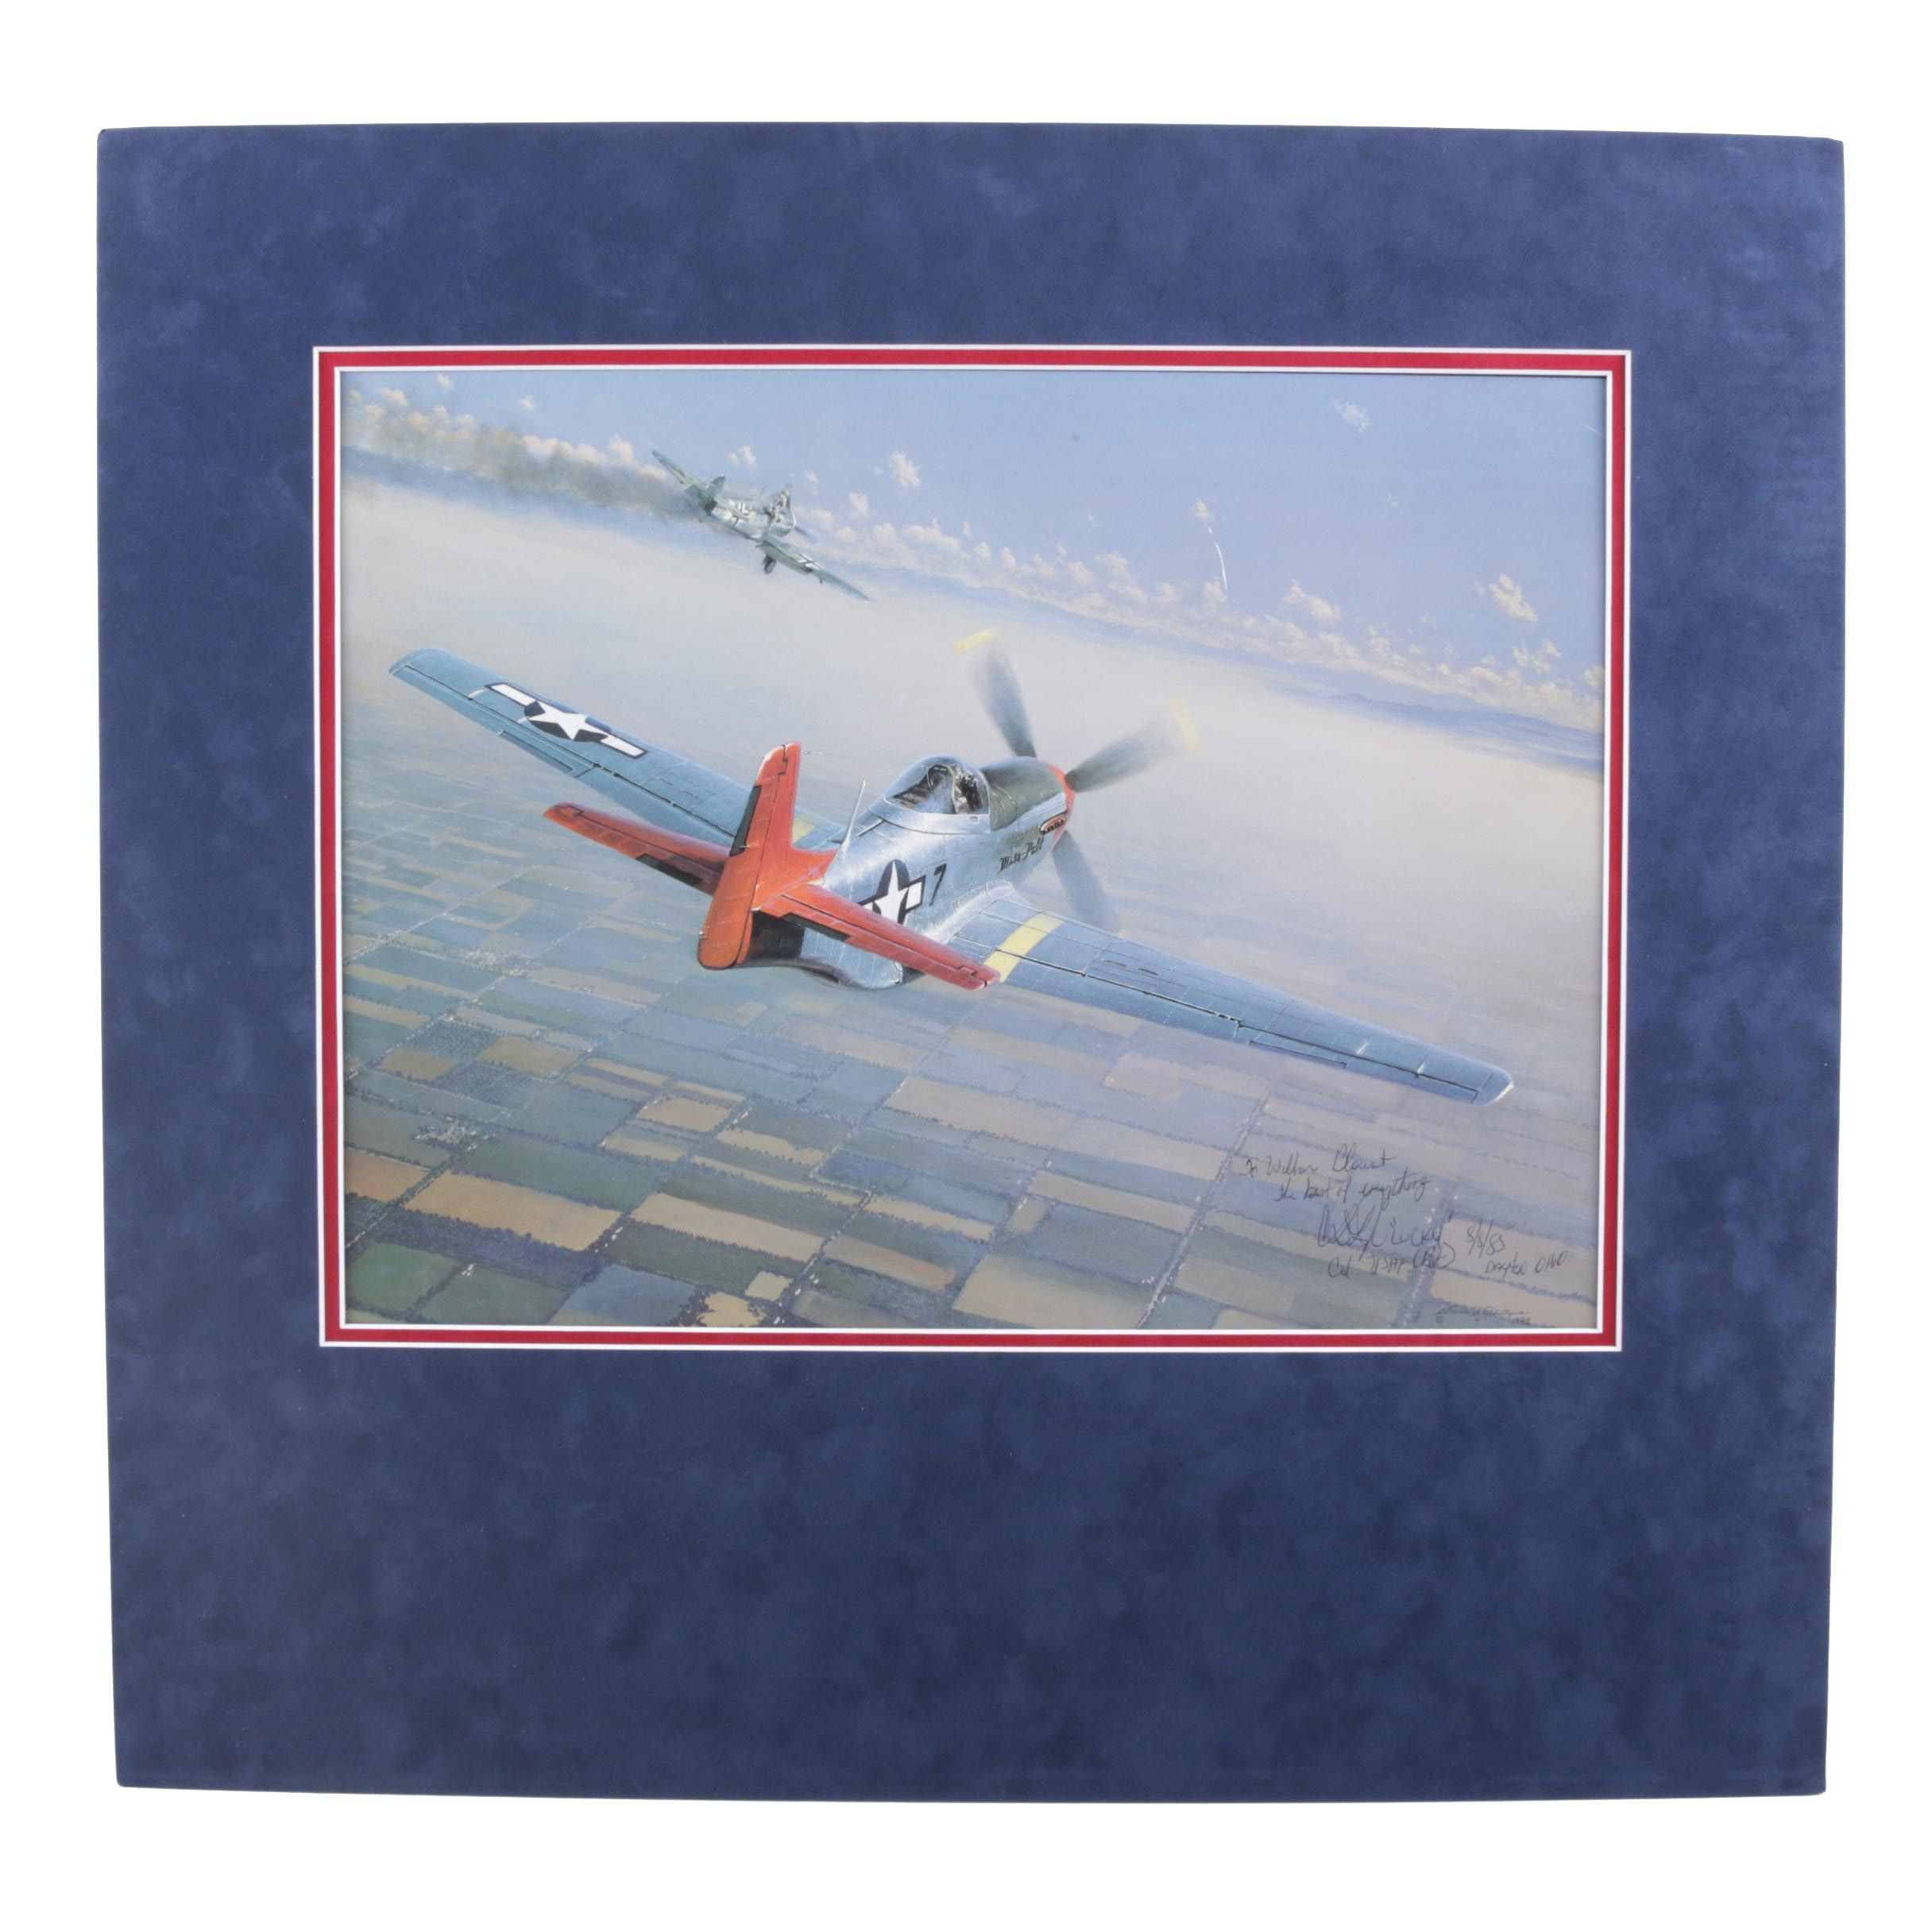 William S. Phillips Offset Lithograph of Tuskegee Airman, Signed by Pilot